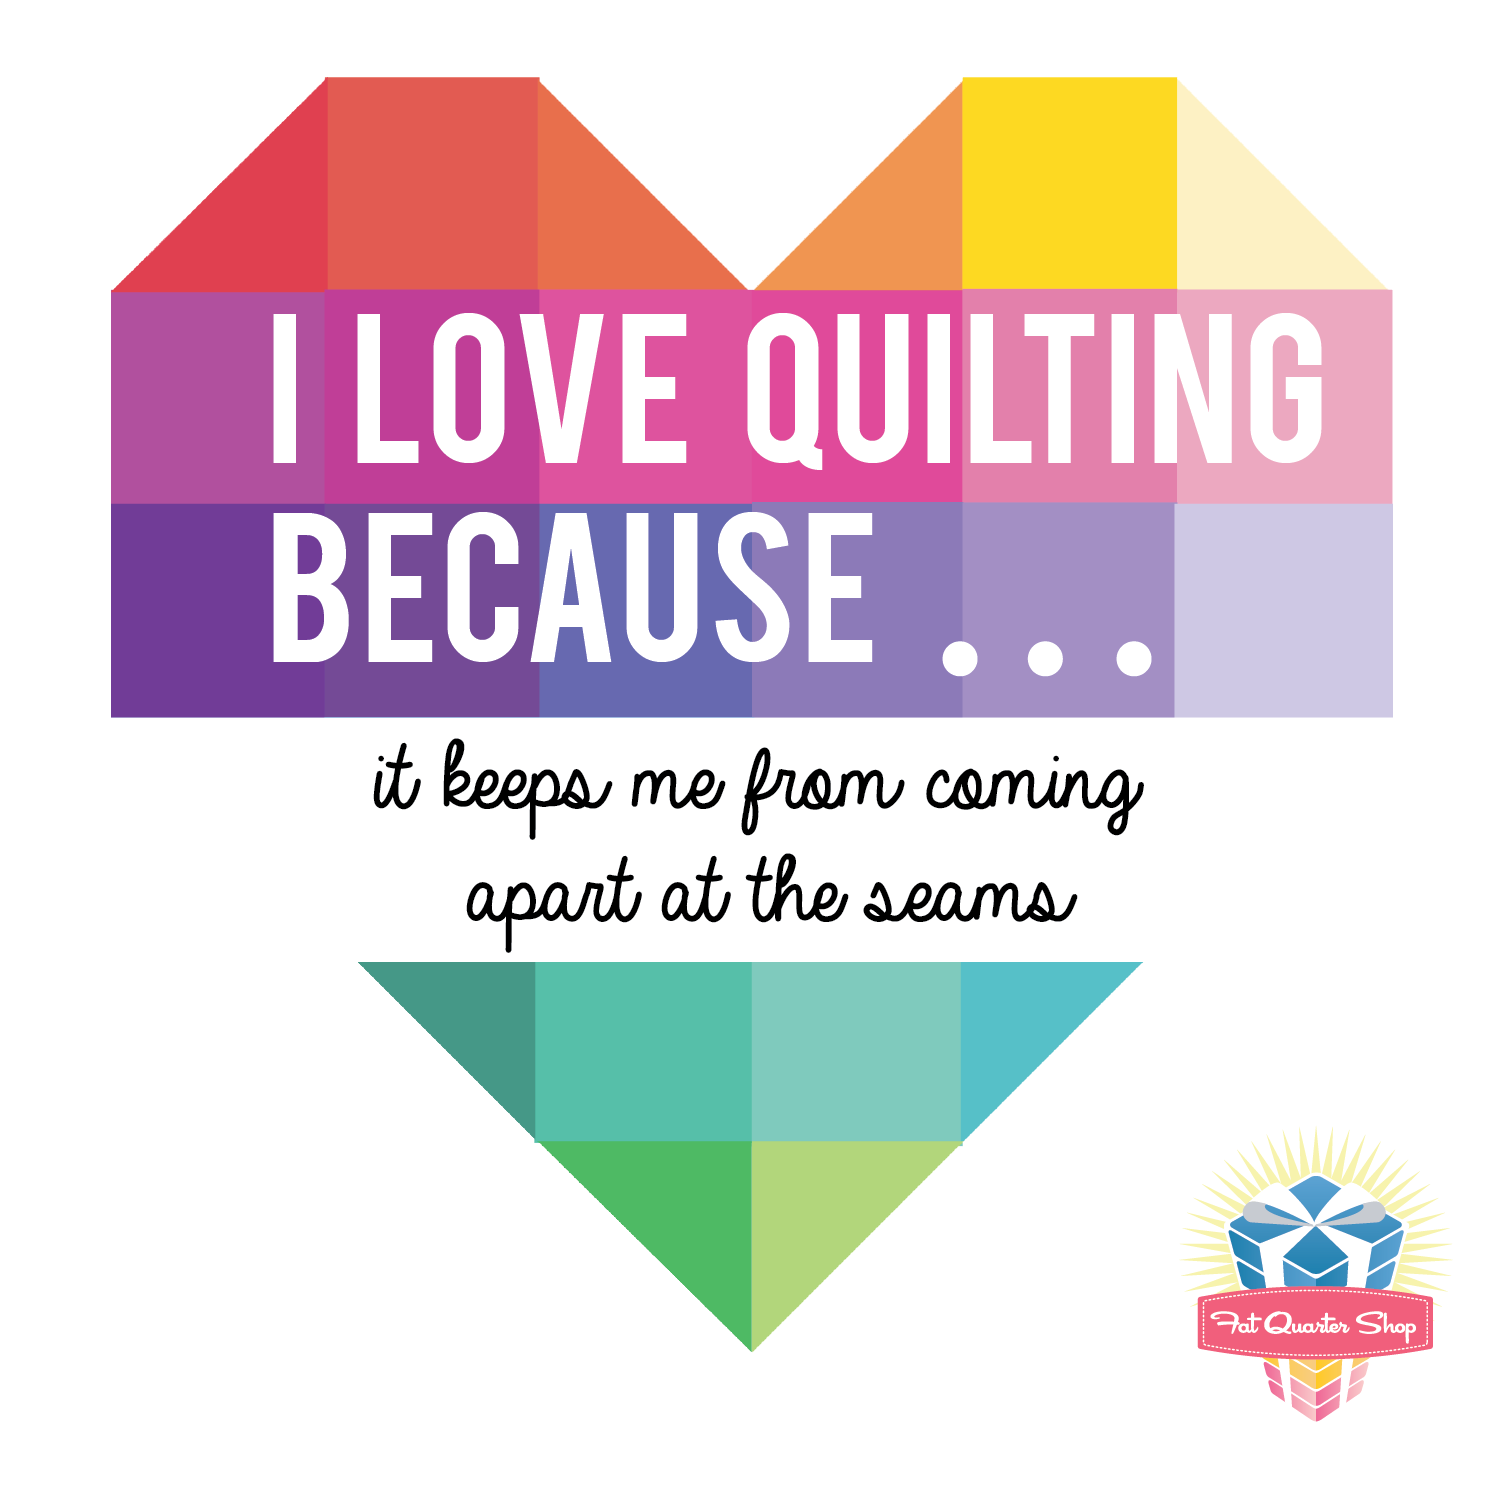 National Quilting and Sewing Month